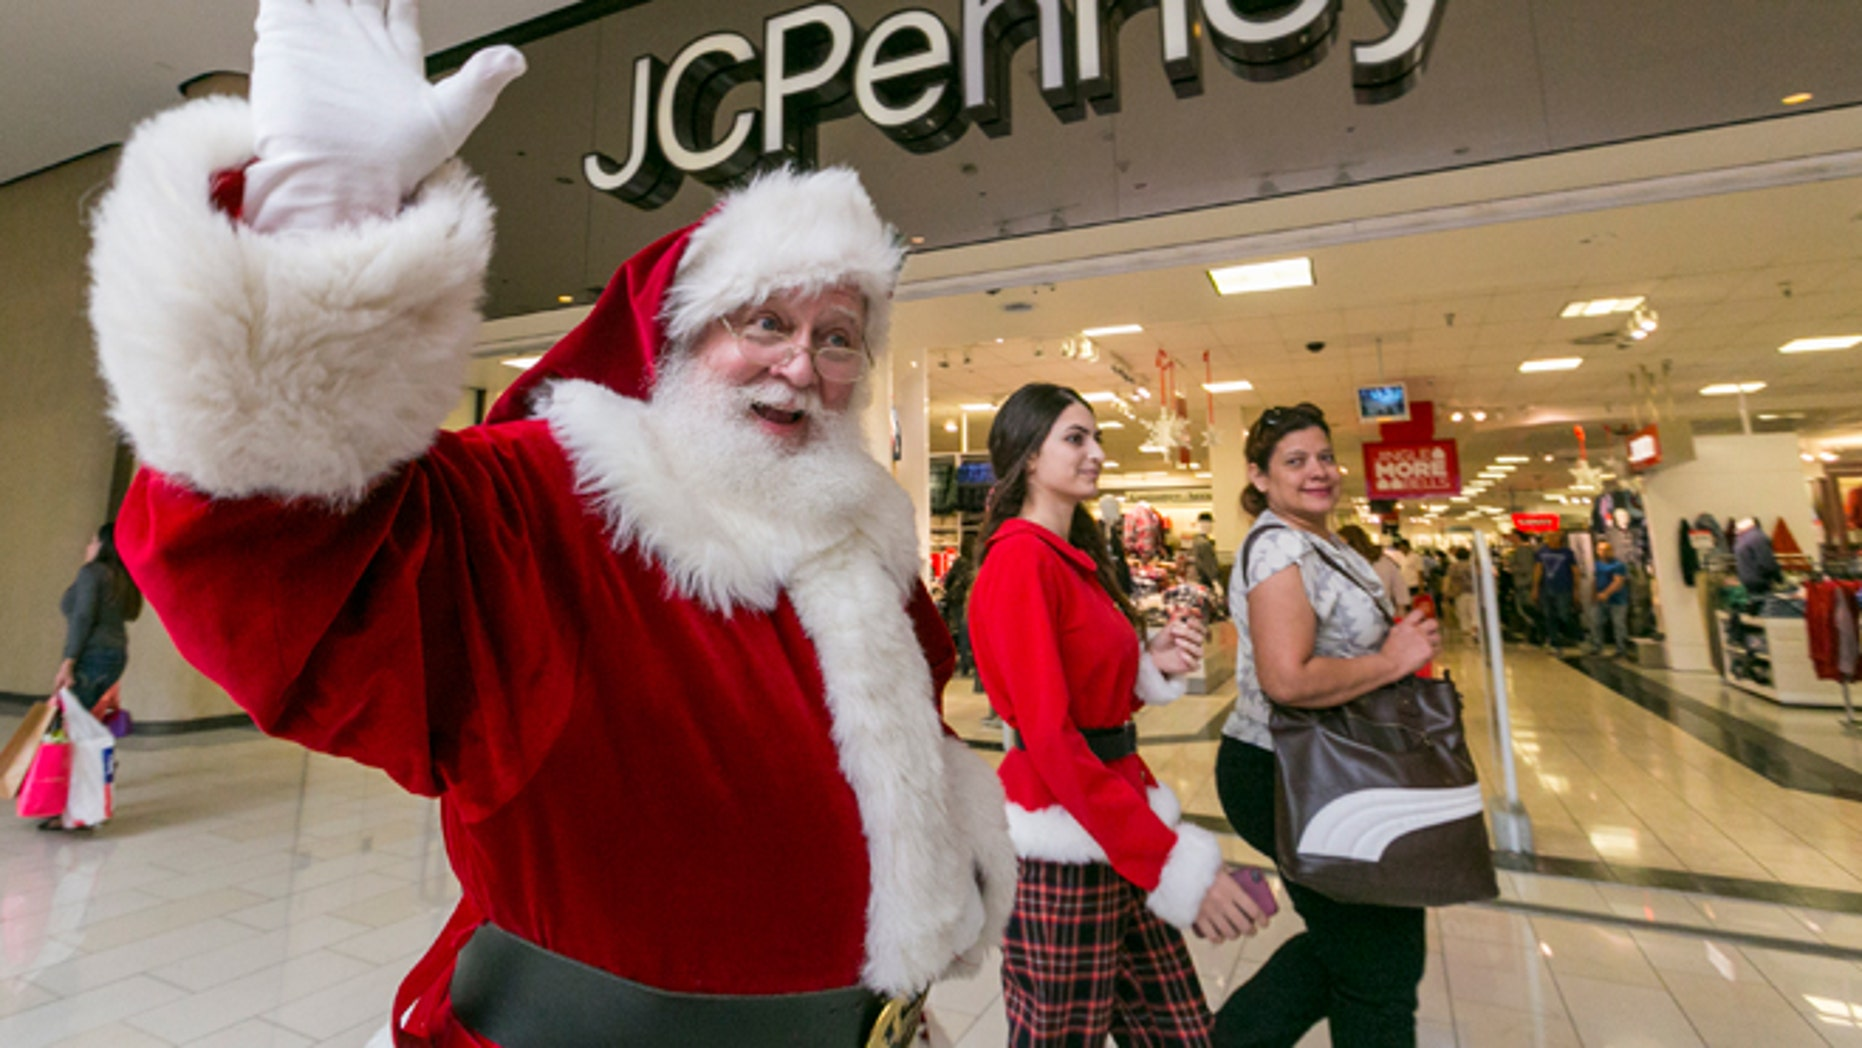 FILE -- Nov. 28, 2014: A man dressed as Santa Claus greets shoppers outside the J.C. Penney store at the Glendale Galleria shopping mall in Glendale, Calif.